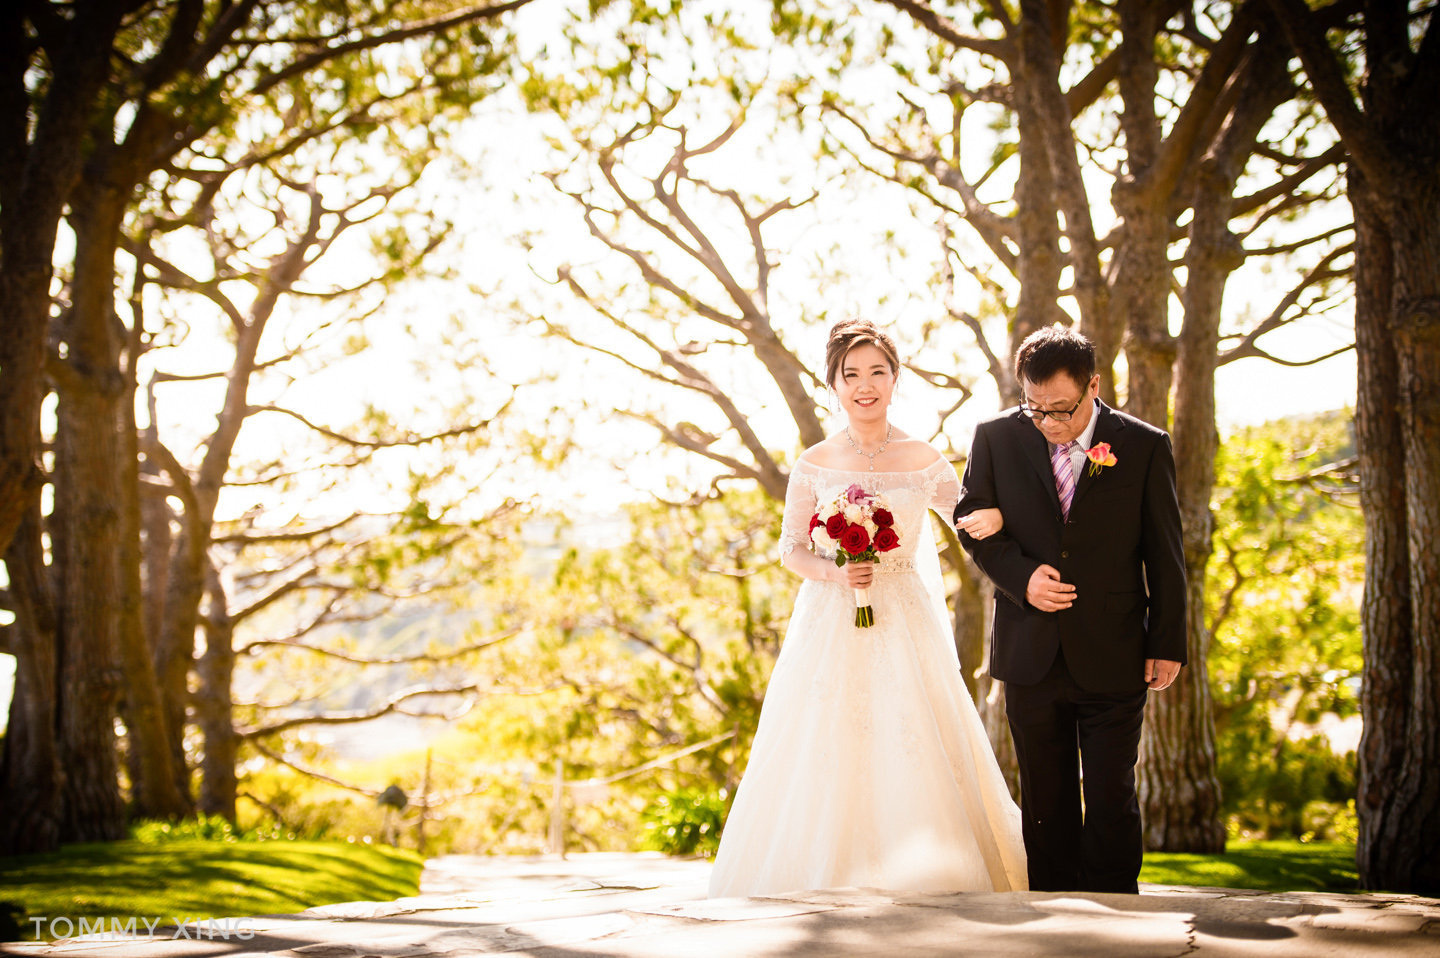 Los Angeles Wedding Photographer 洛杉矶婚礼婚纱摄影师 Tommy Xing-112.JPG